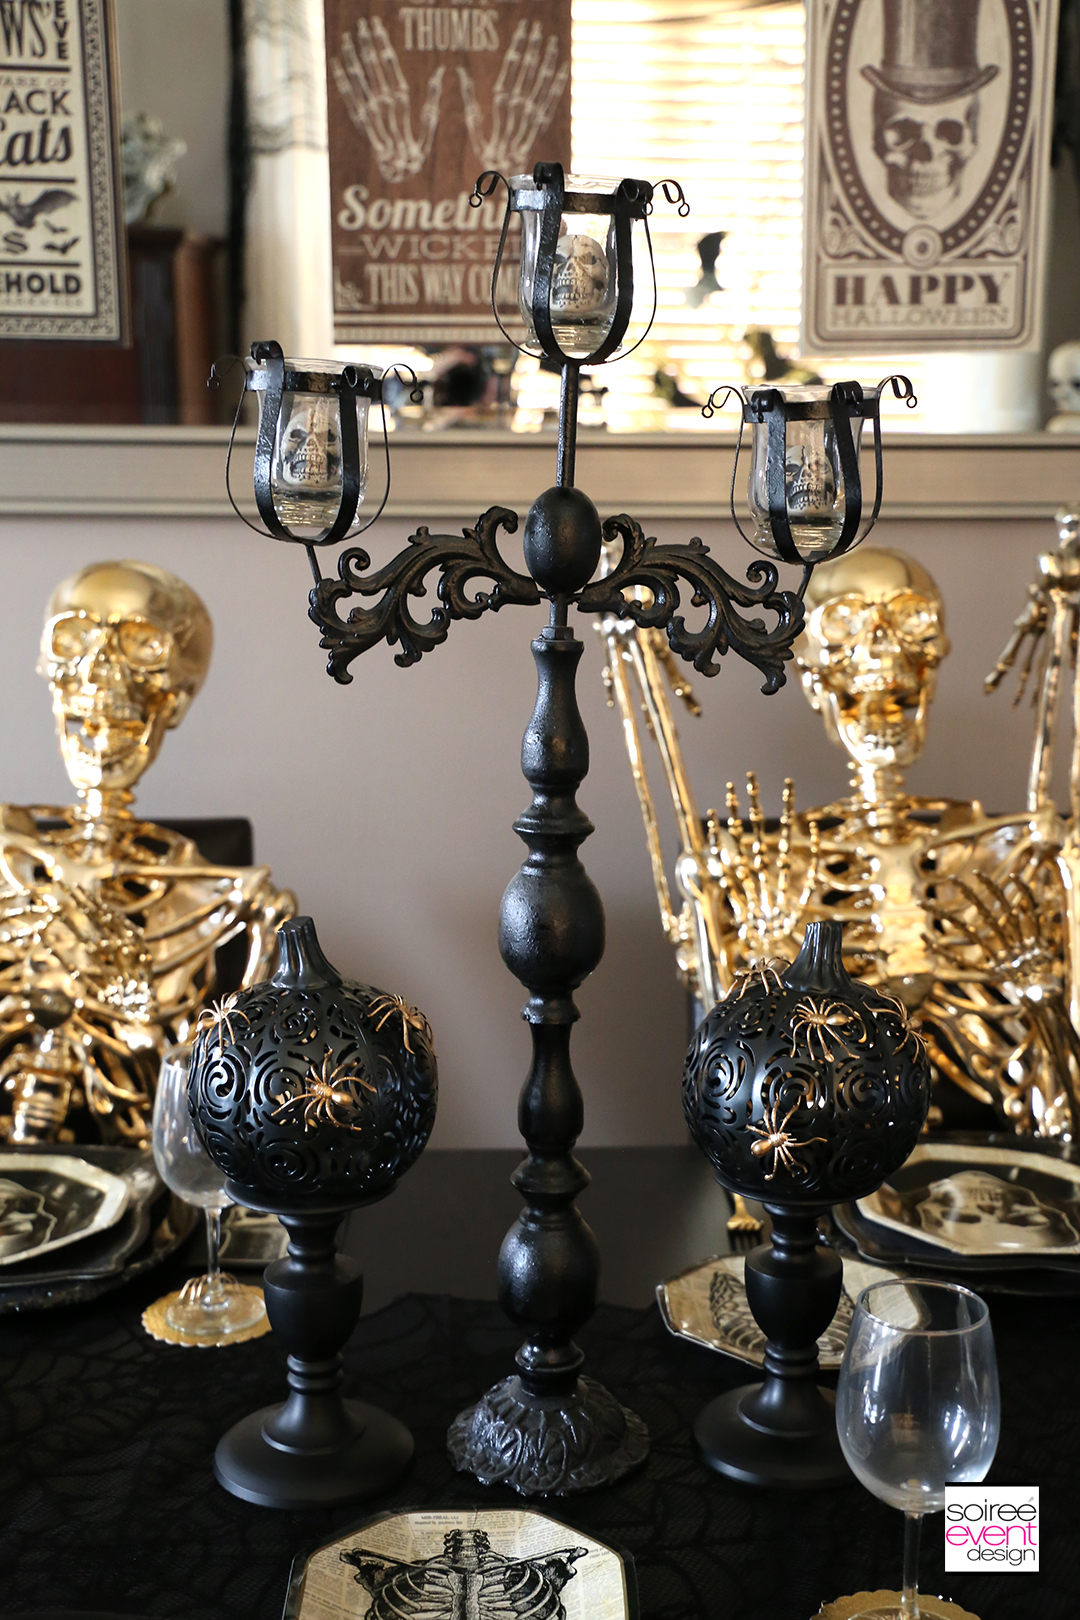 Black and Gold Halloween Decorating Ideas - Centerpiece